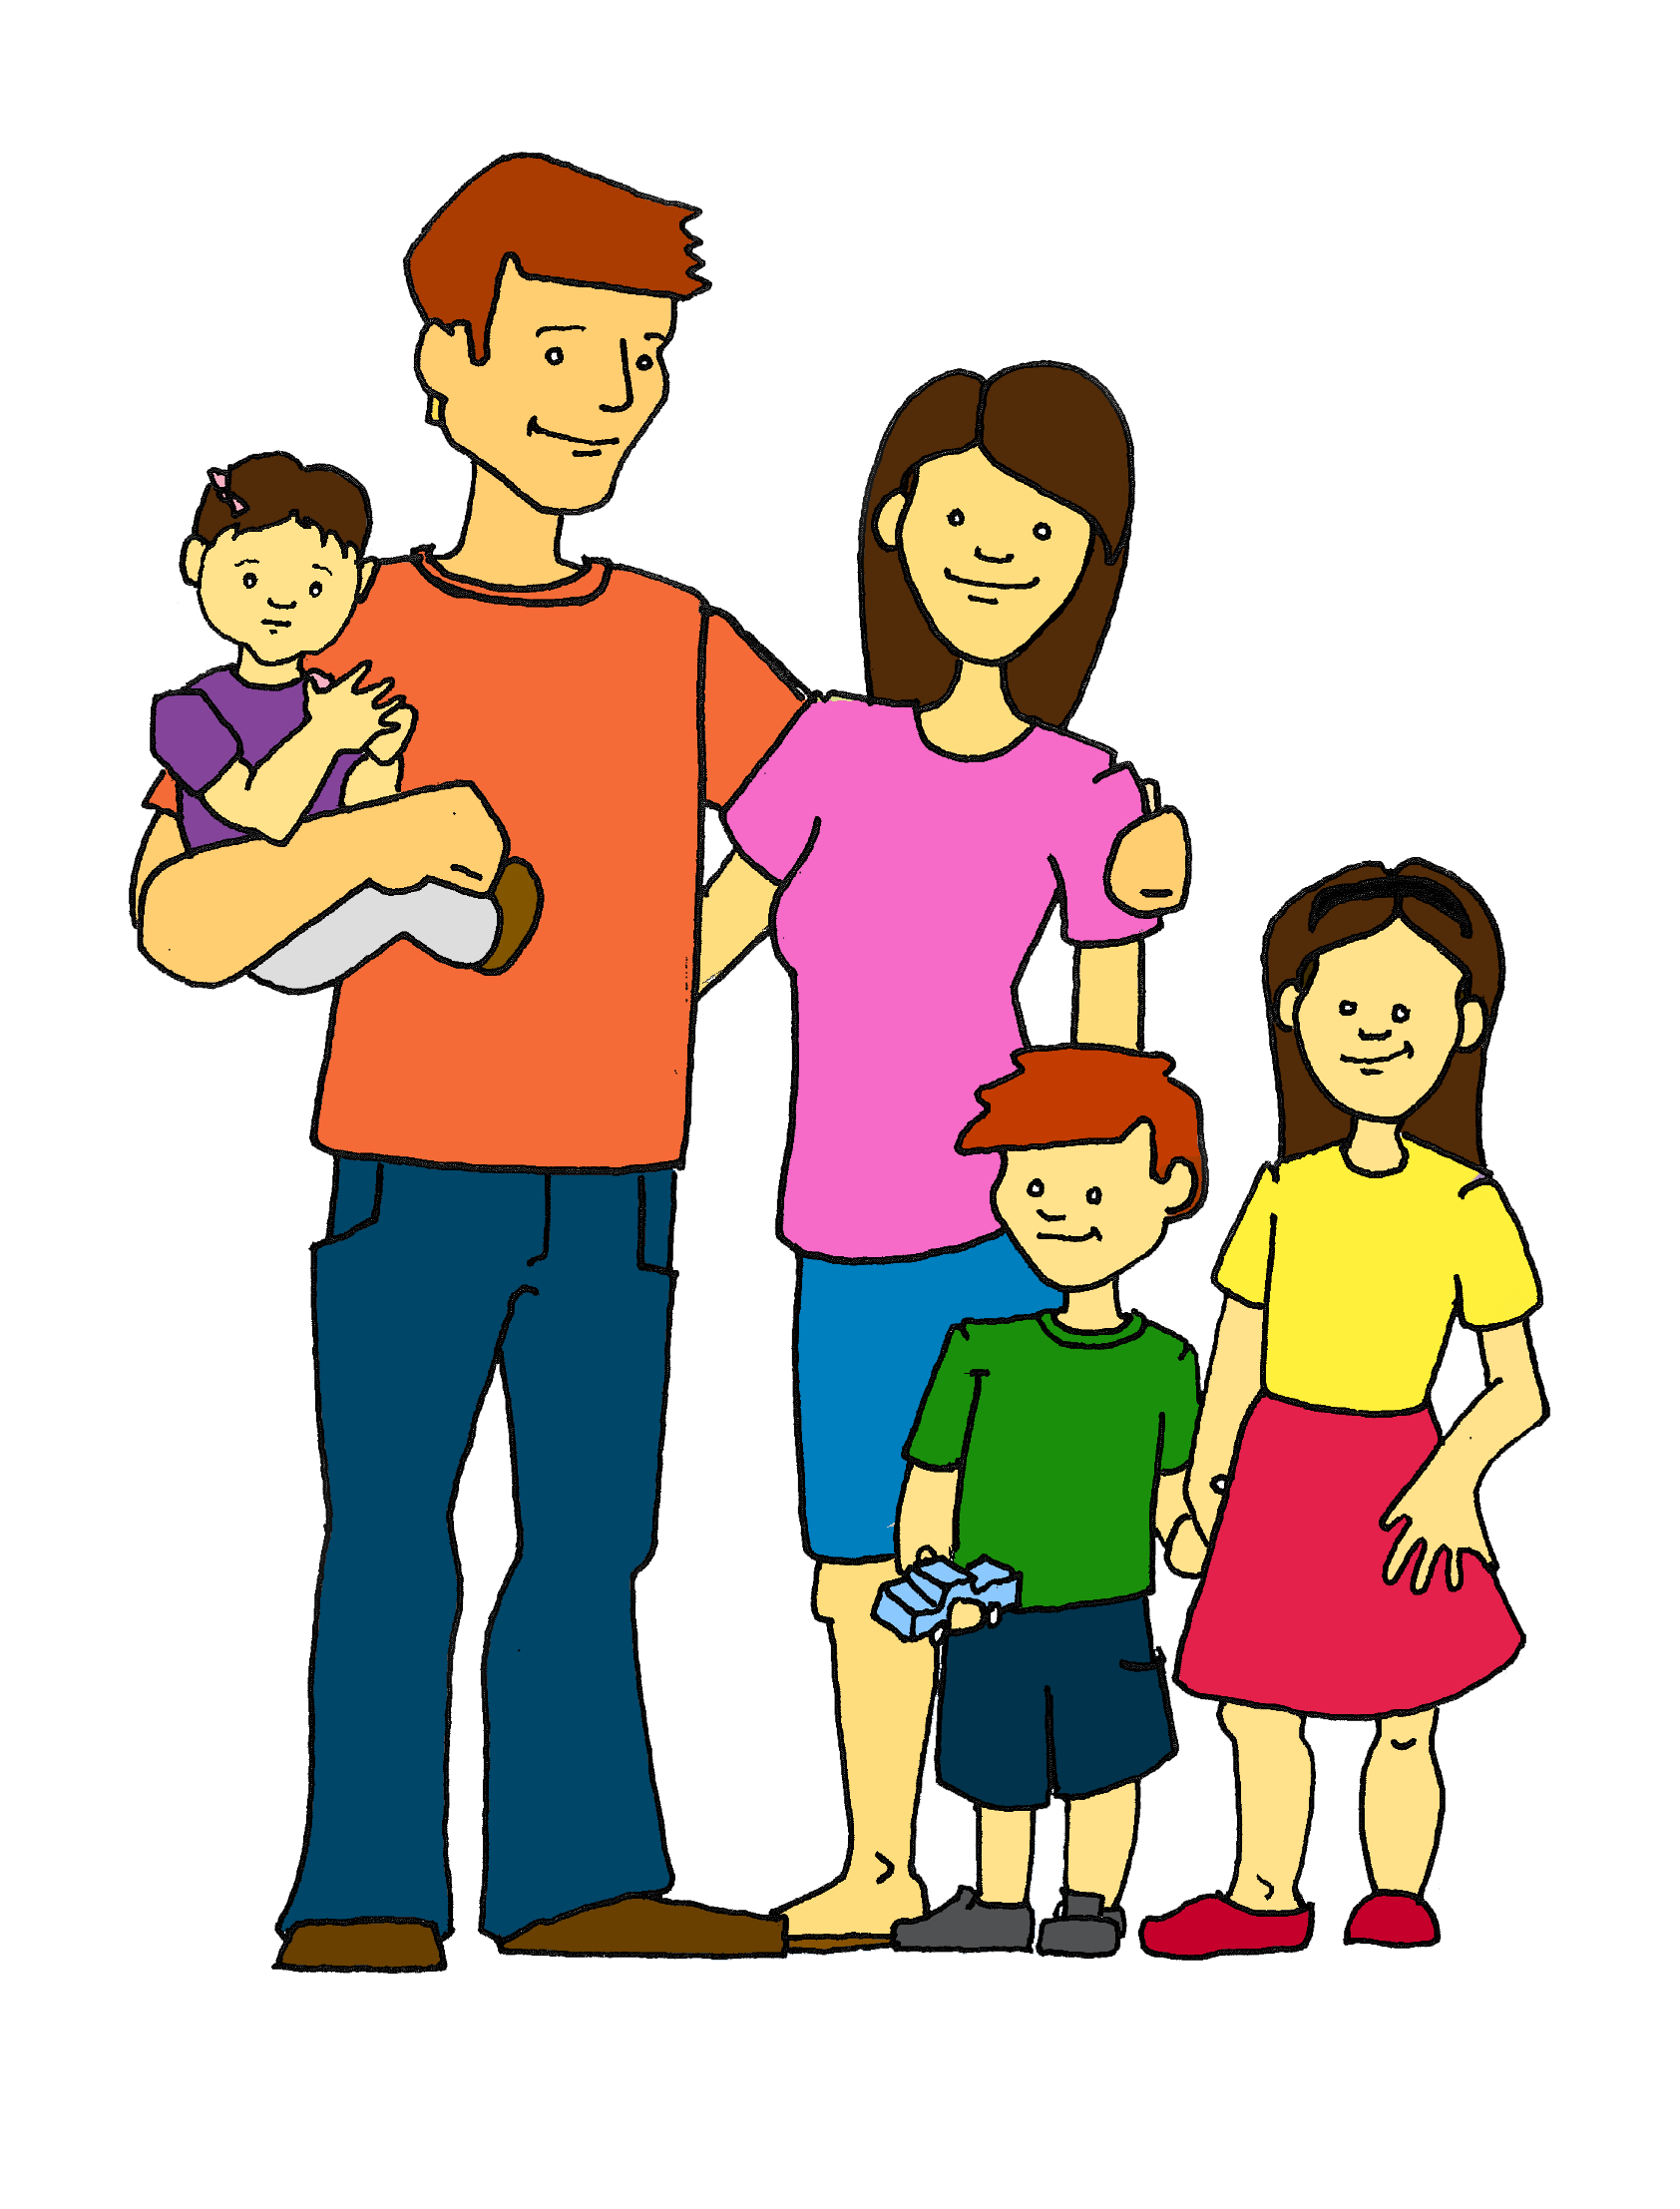 svg library library Members image group clip. Family clipart